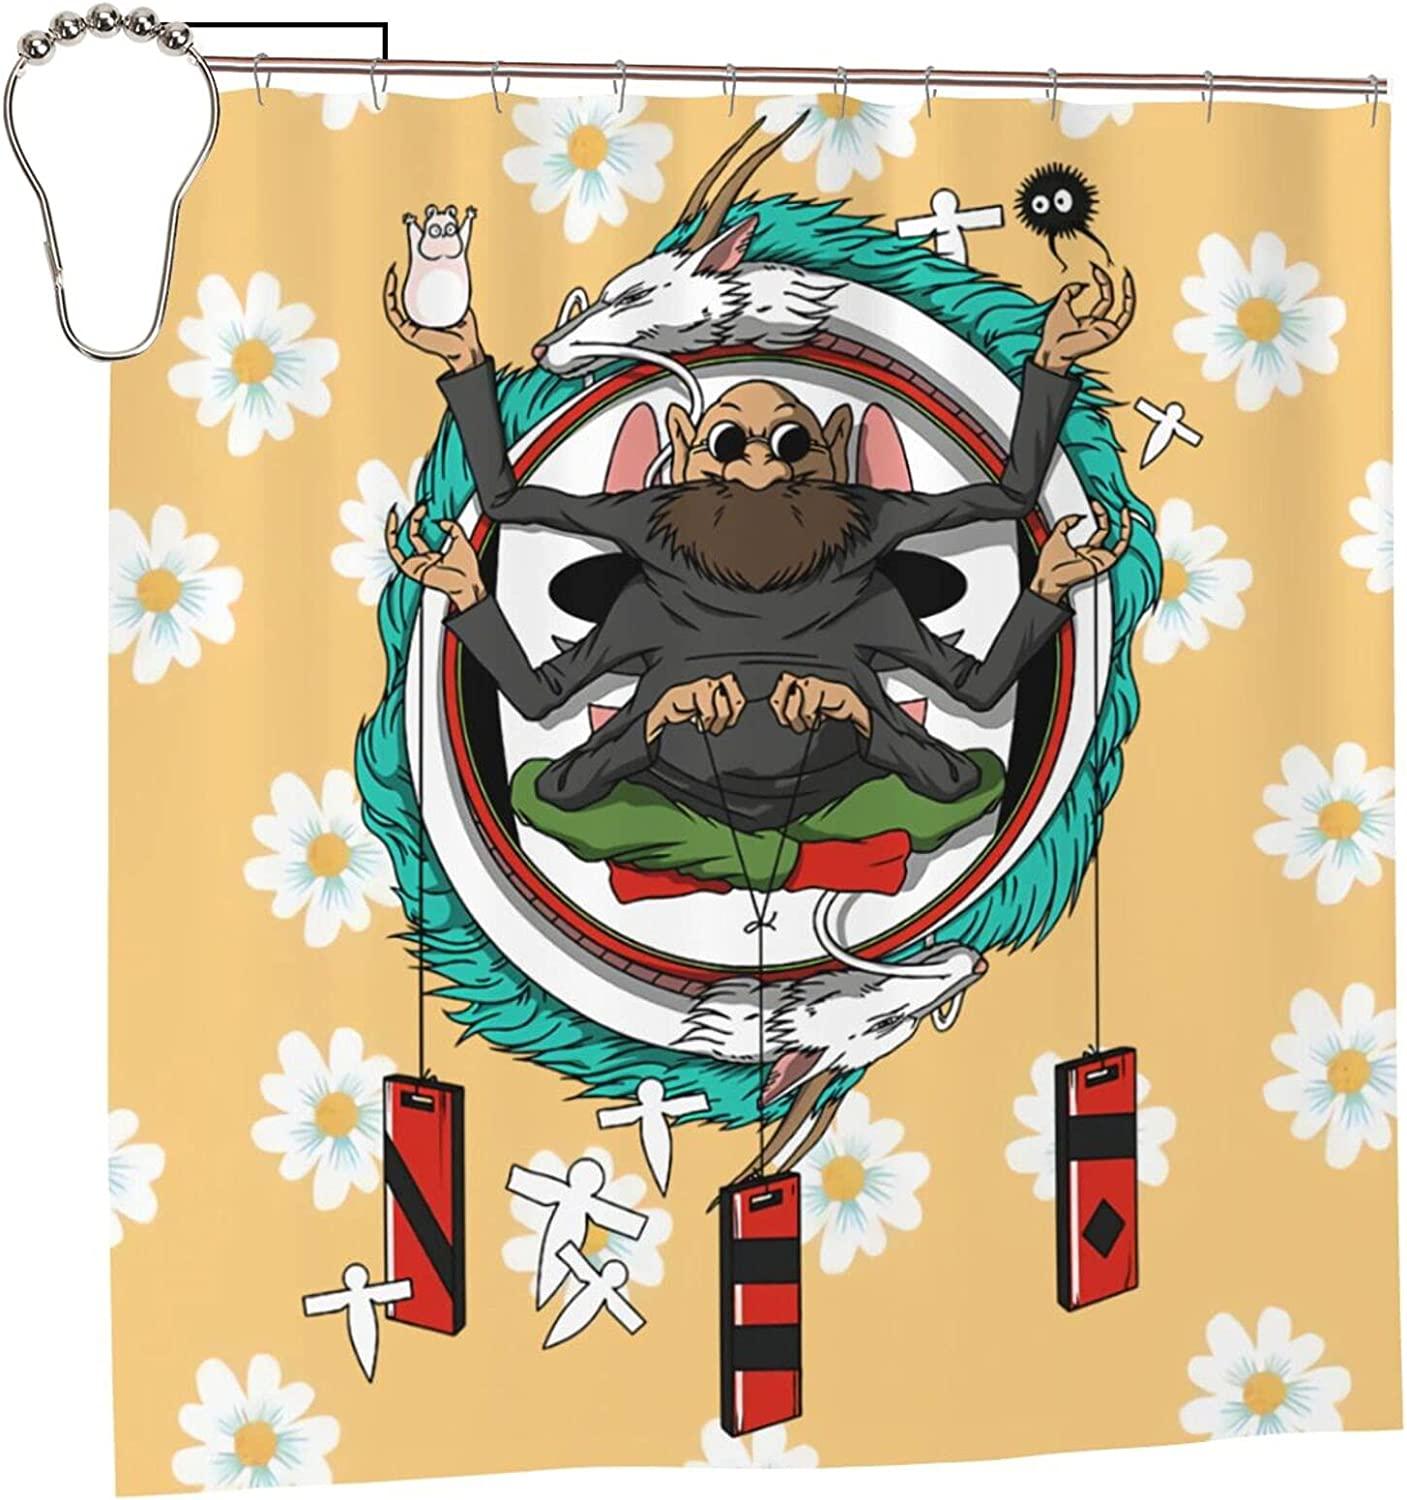 Spirited 70% OFF Outlet Away Anime Bathroom Sales for sale Shower Curtain H X W Liner 72